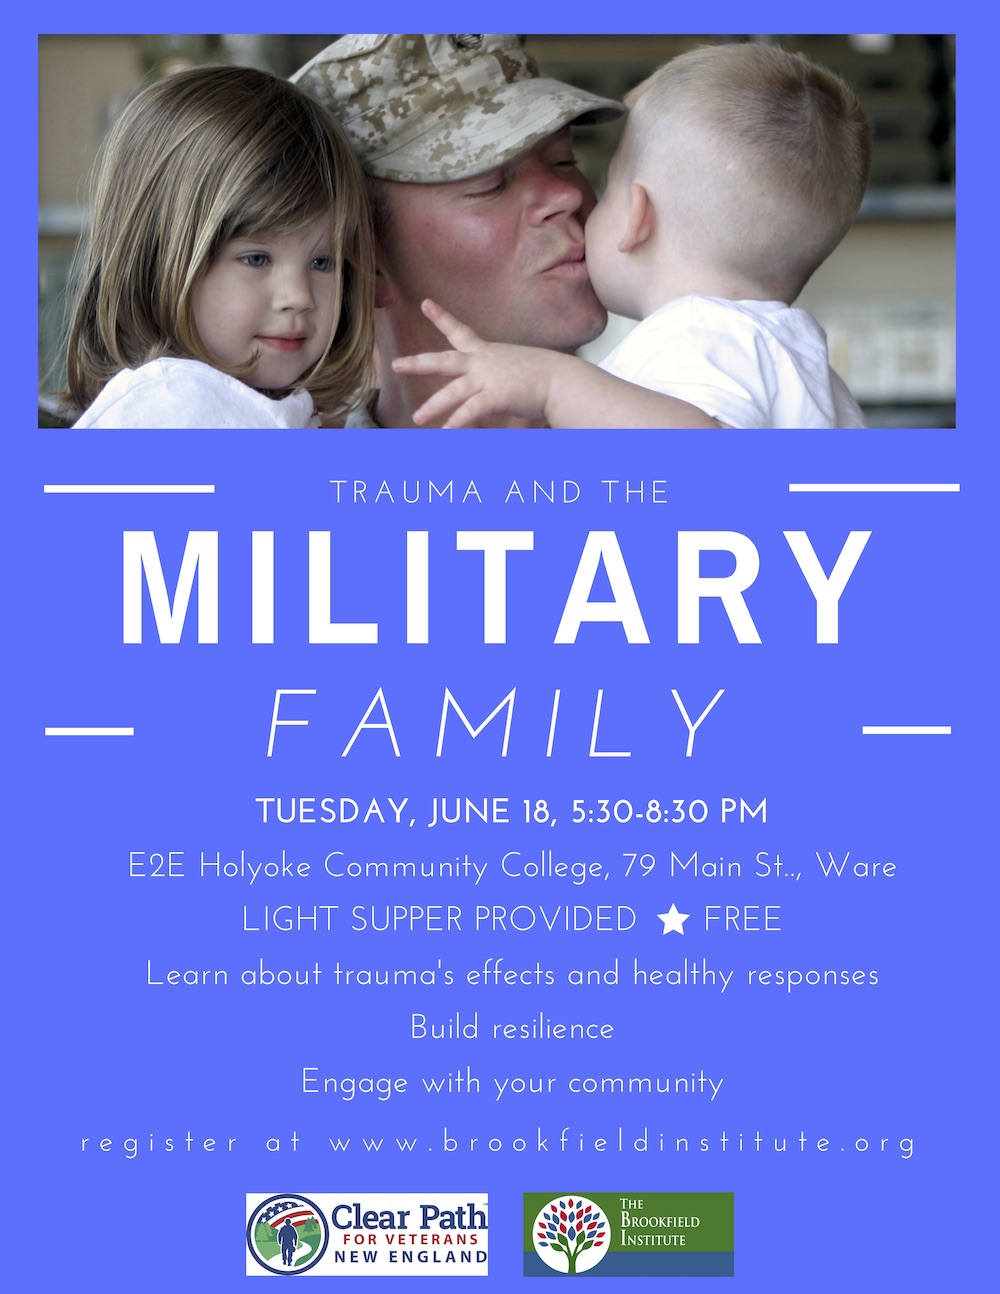 Military and Family flier.jpg